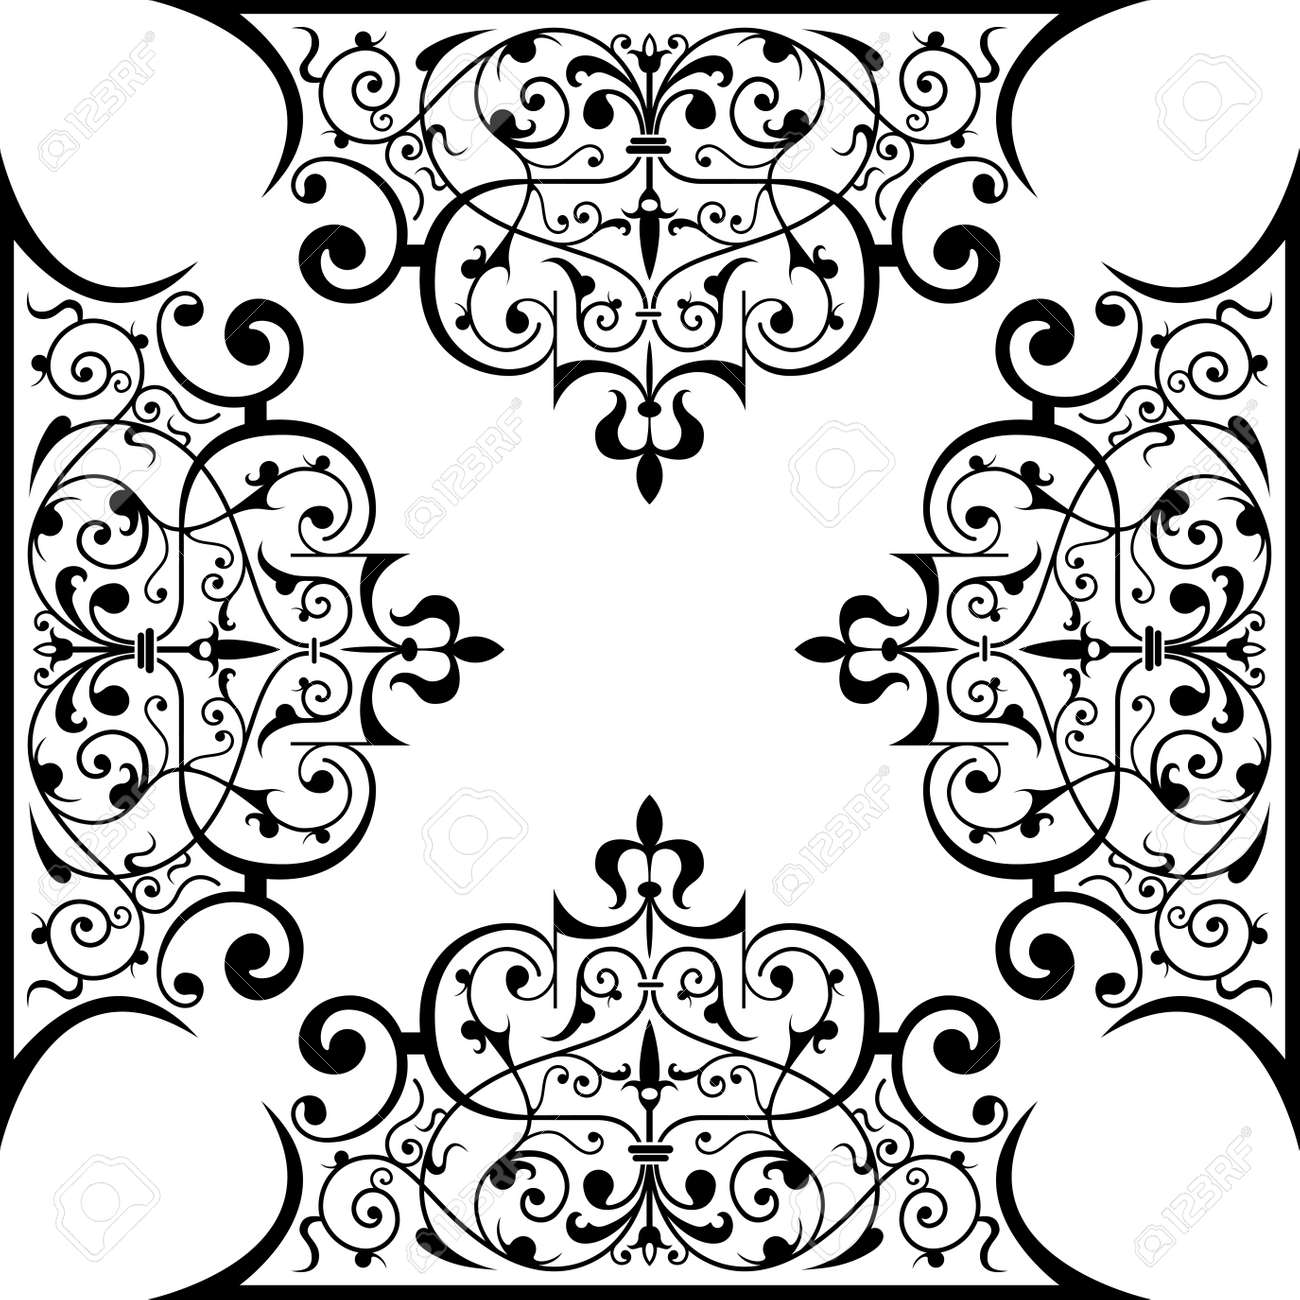 Ancient decorative ornament vector illustration isolated on white Stock Illustration - 1290699